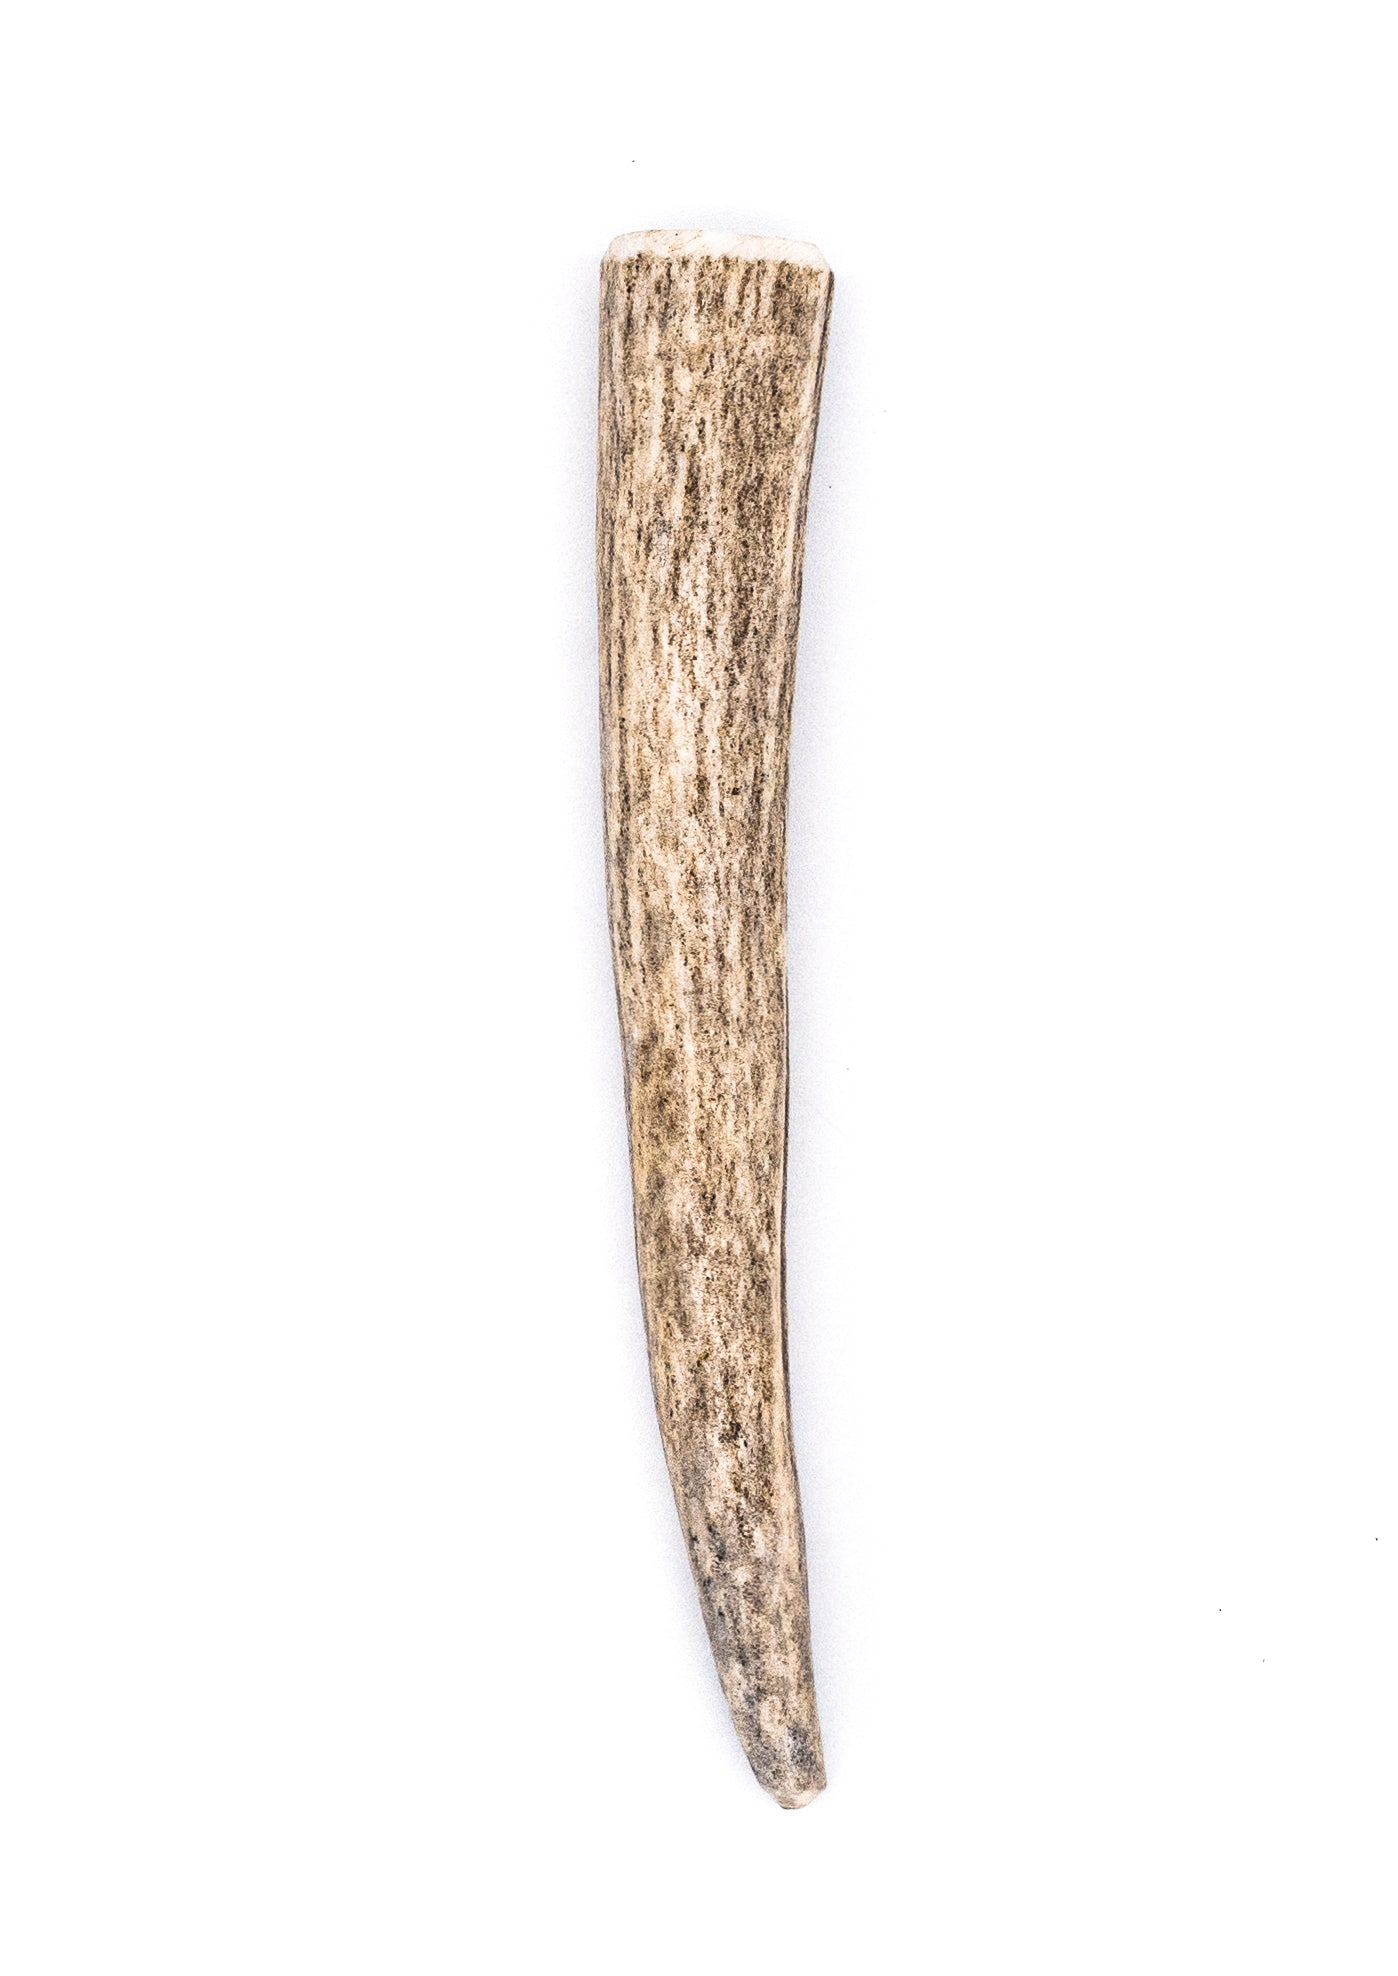 Miniature Deer Antler Dog Chew